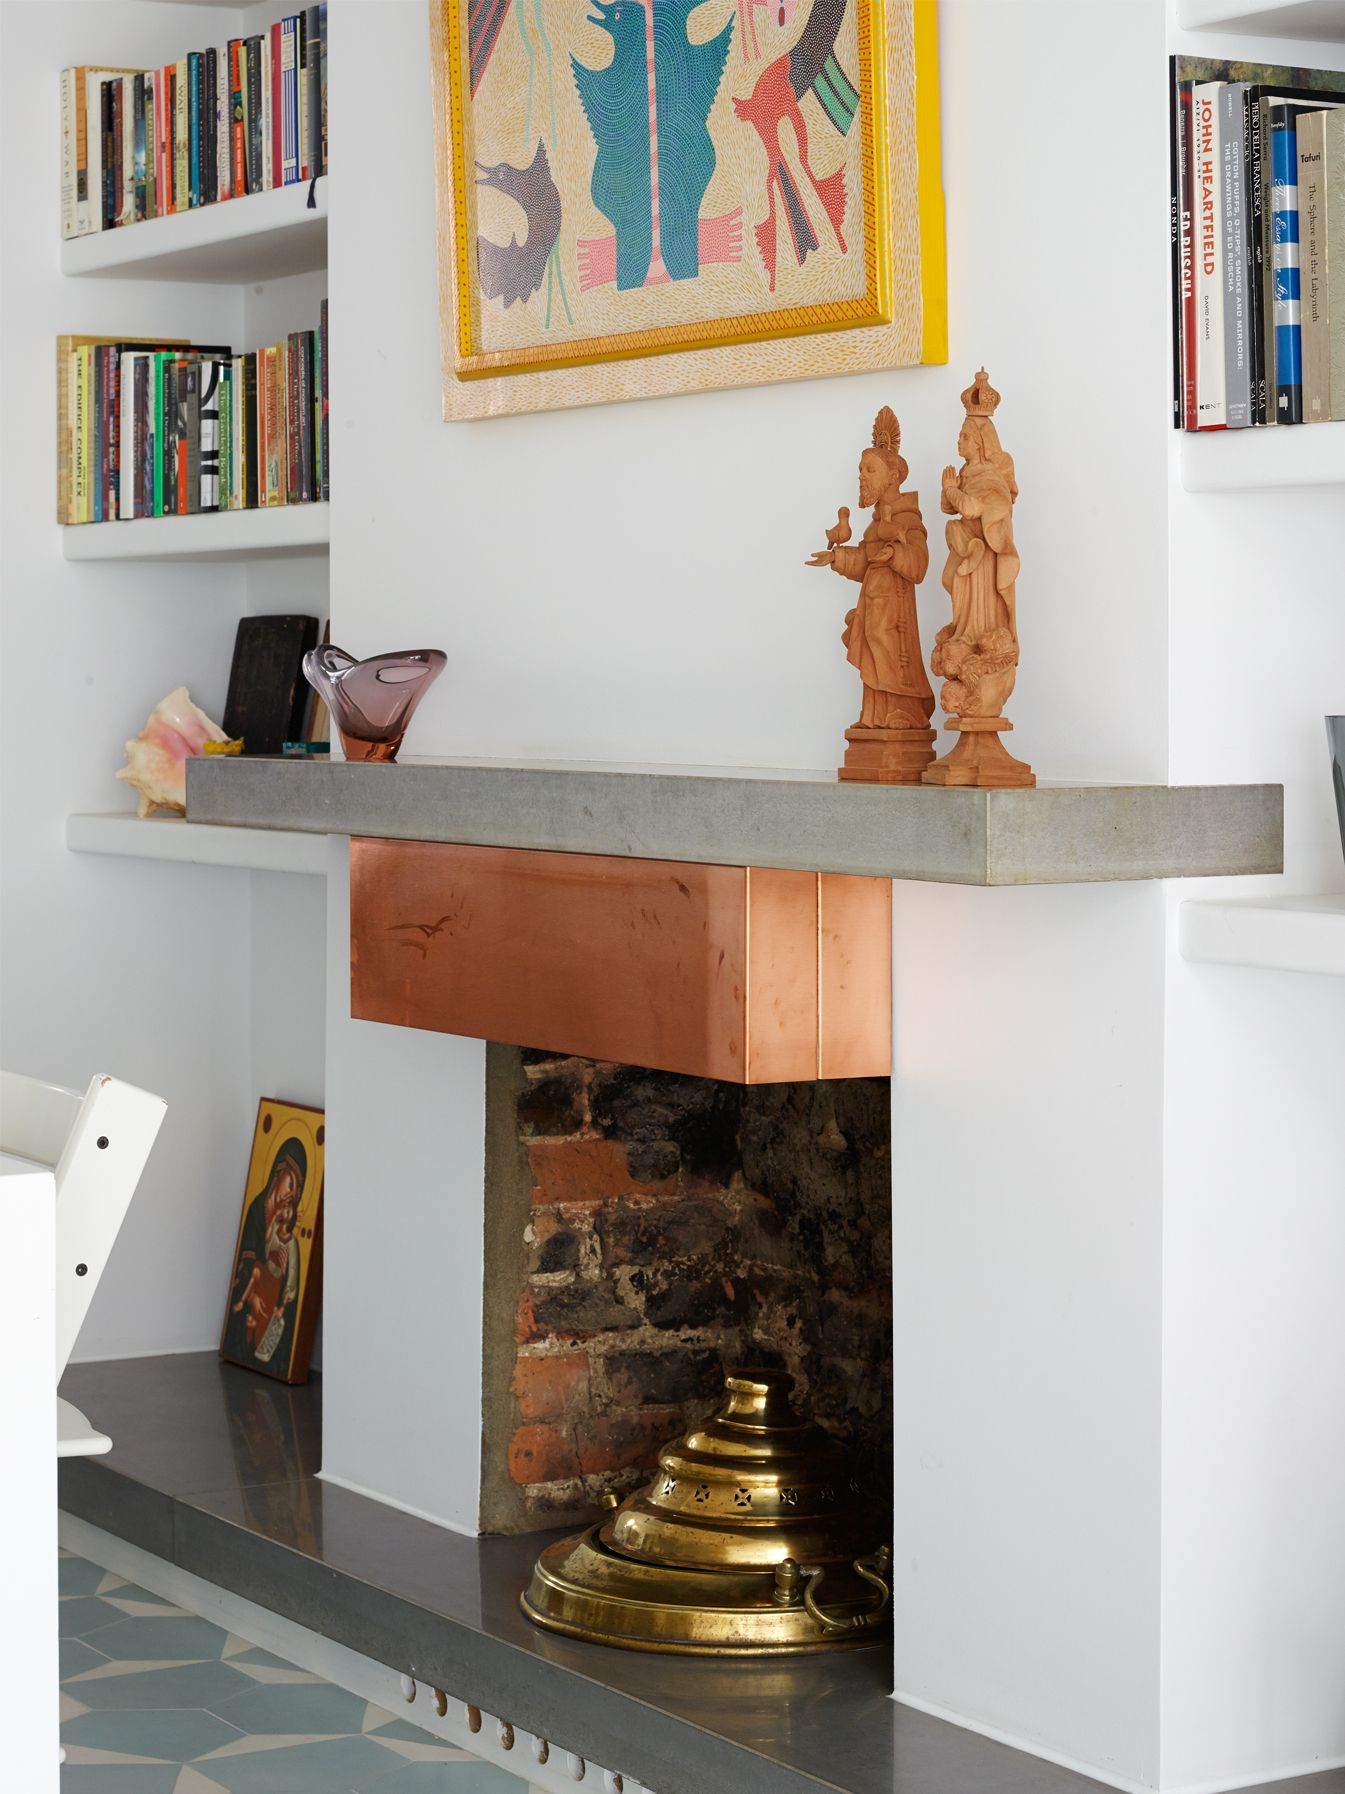 Concrete Fire Hearth With Matching Concrete Shelf Above The Fire